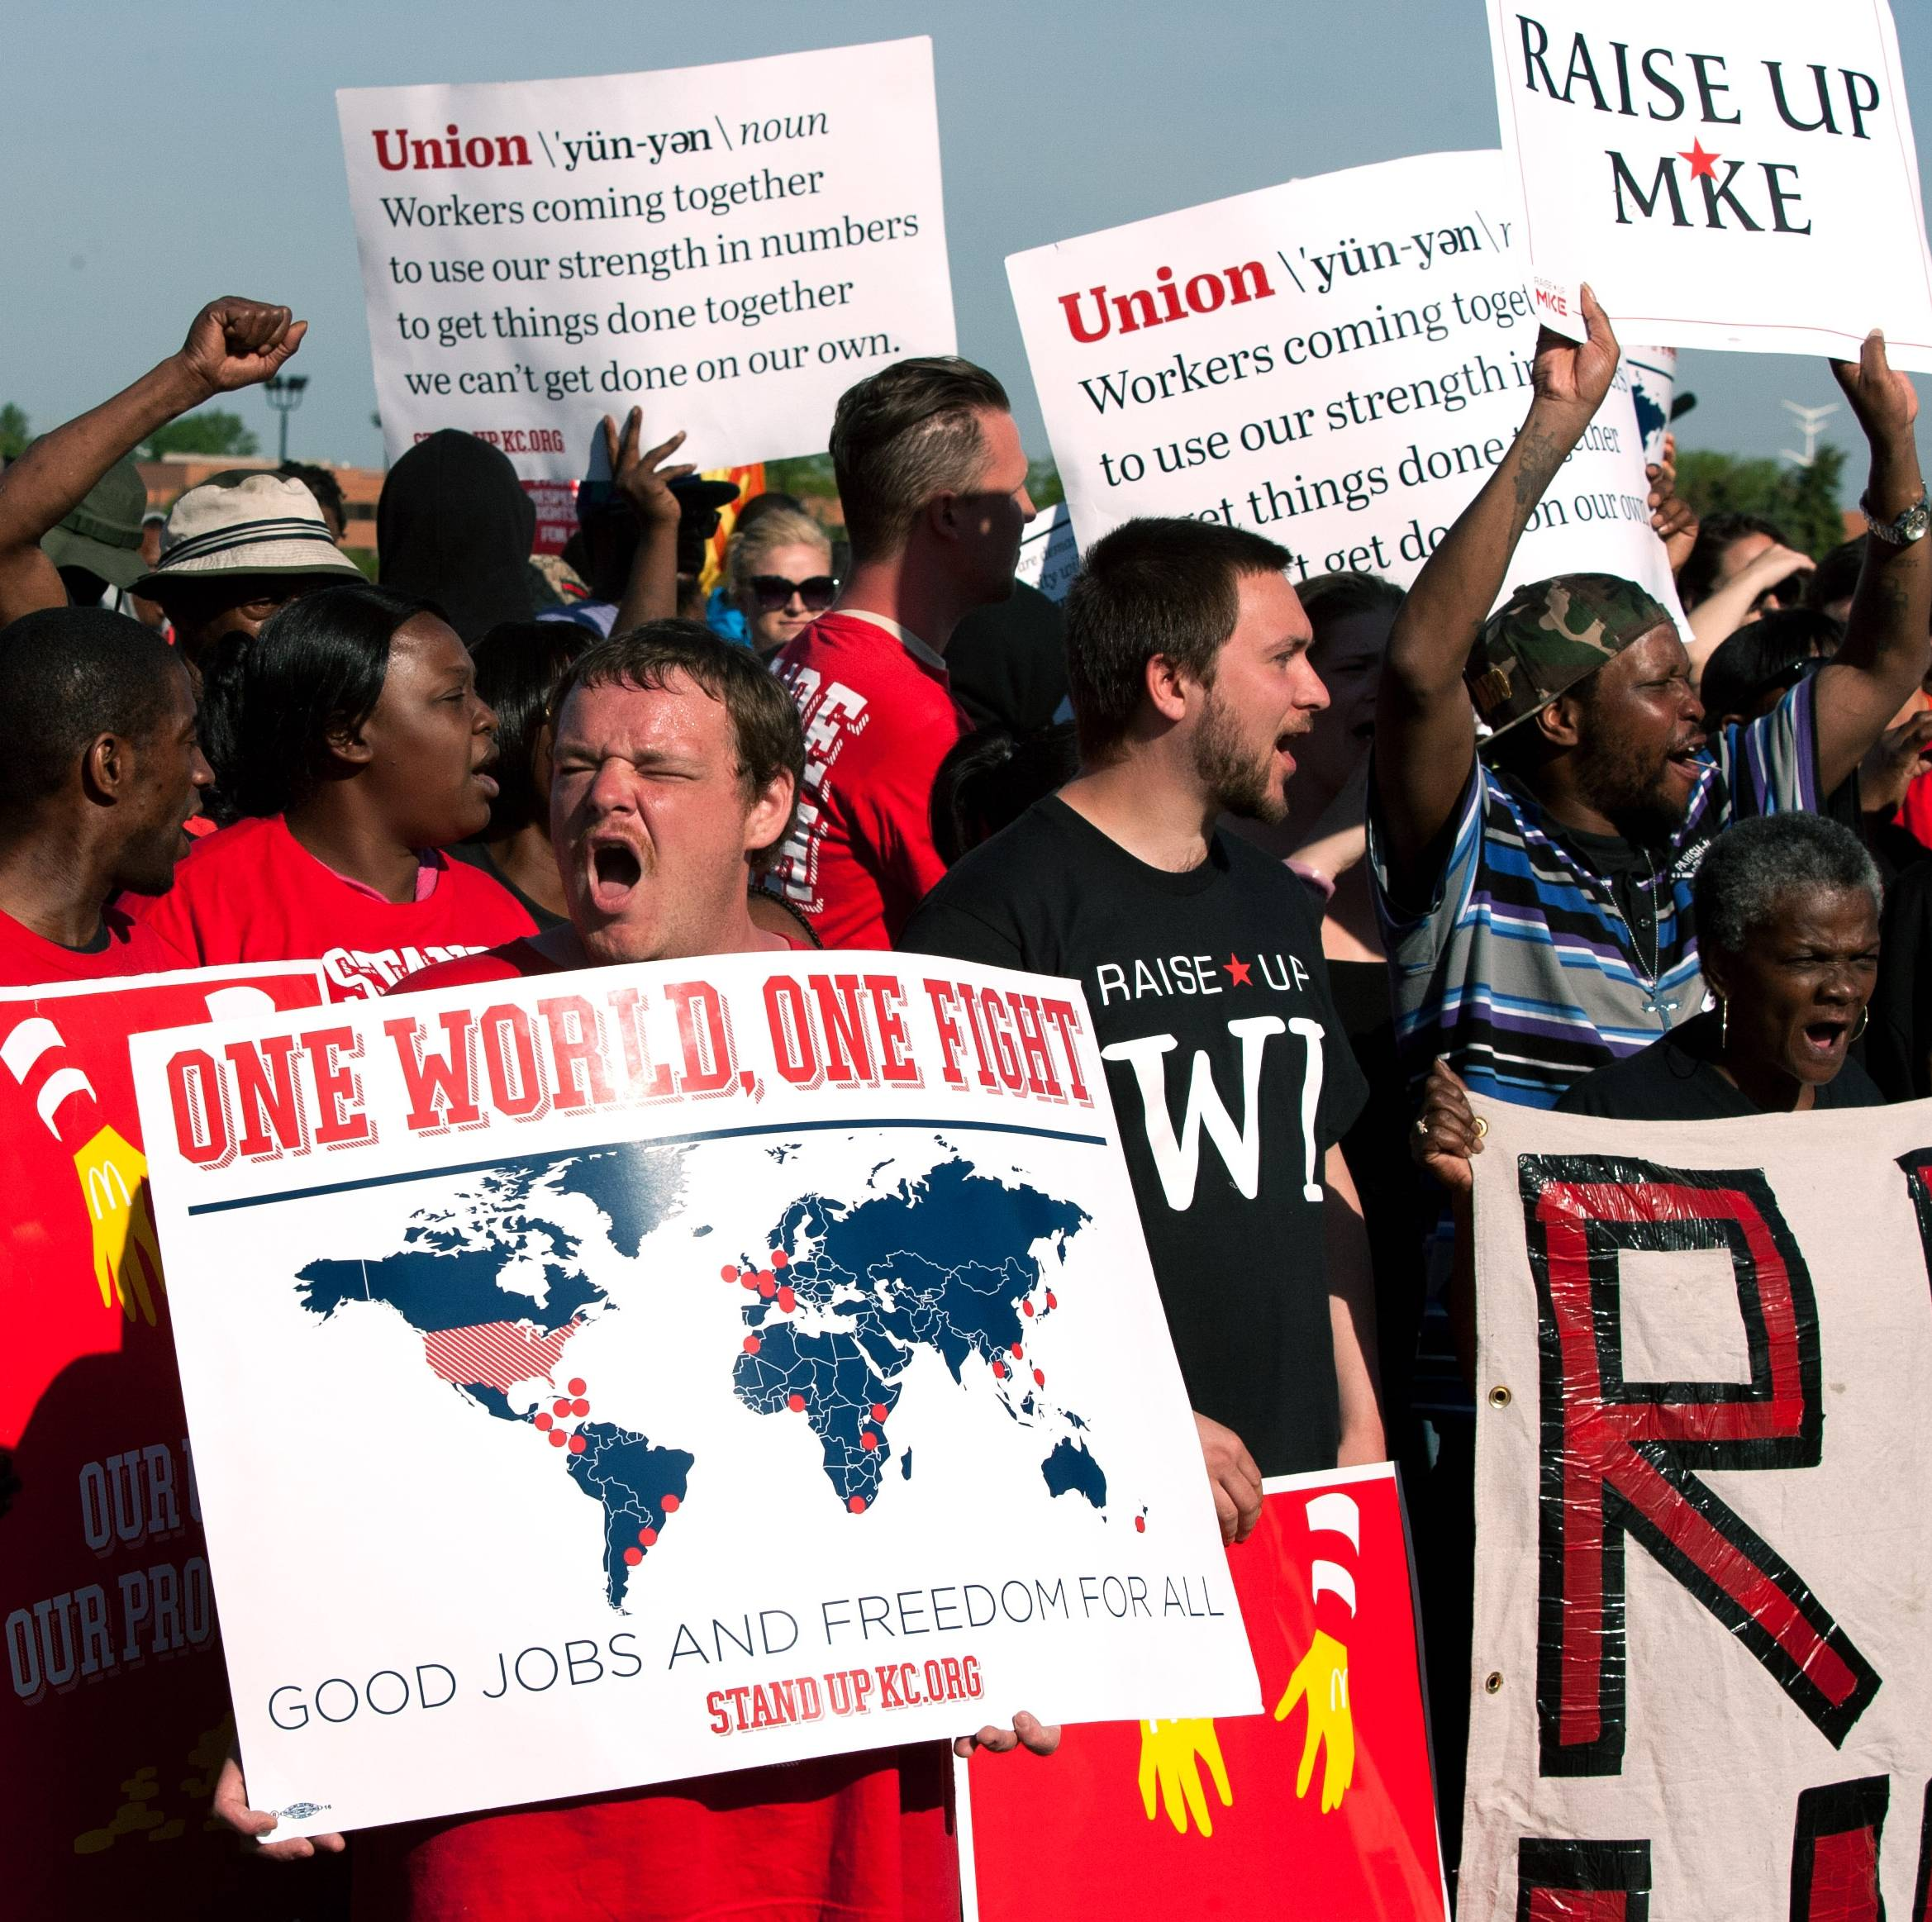 Protesters call for higher wages for fast-food workers outside McDonald's headquarters at an annual shareholder meeting in Oak Brook Thursday.